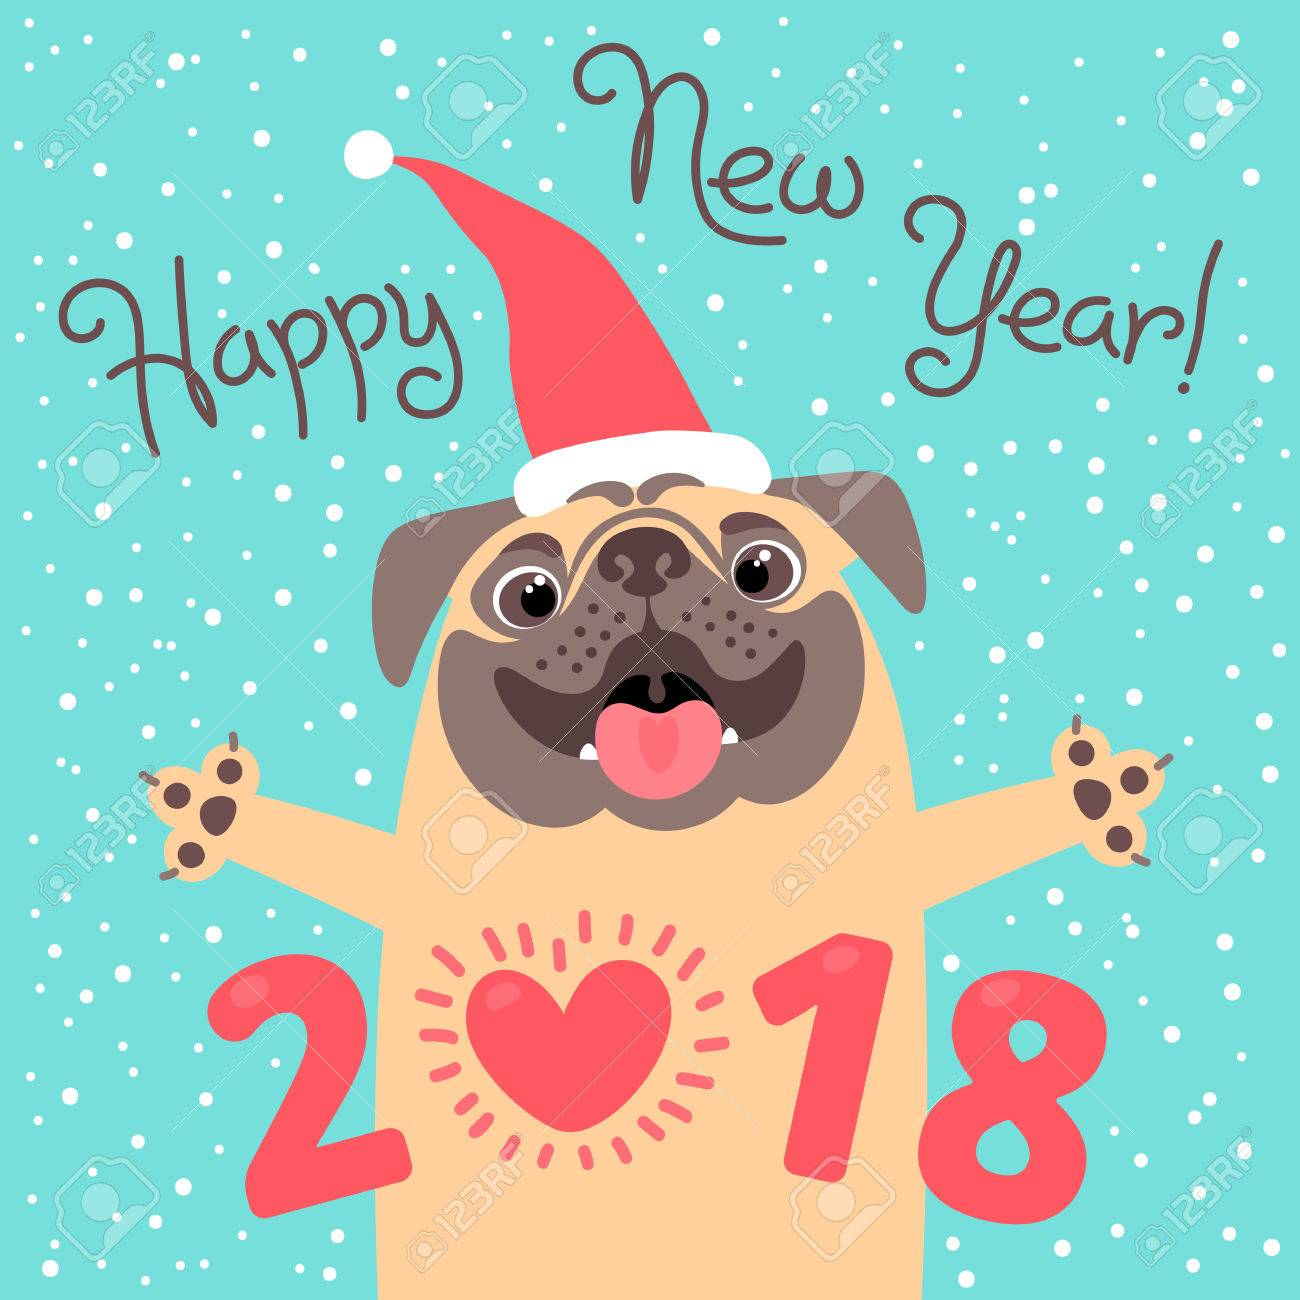 happy 2018 new year card funny pug congratulates on holiday dog chinese zodiac symbol